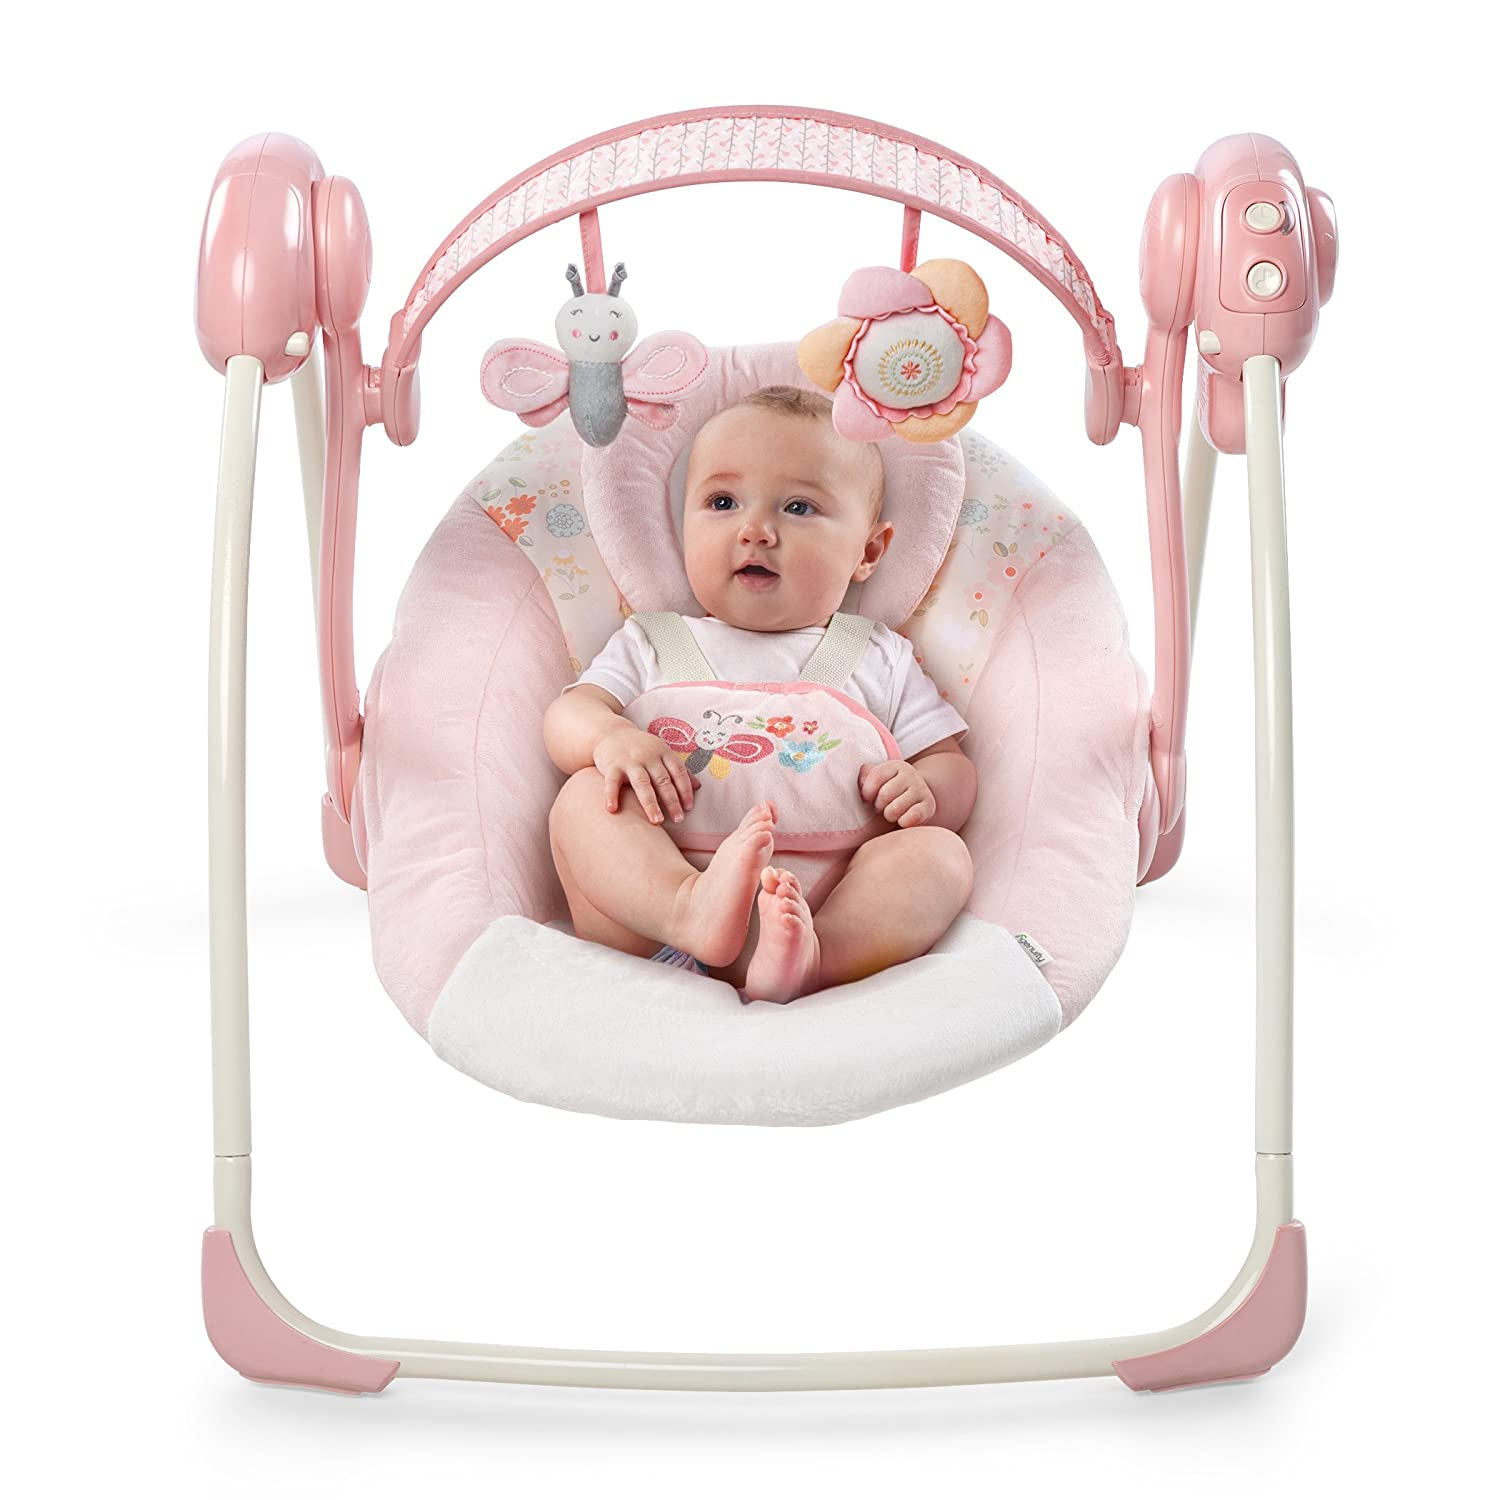 electrical baby image photo caucasian stock cute boy images in swing download home of sitting newborn